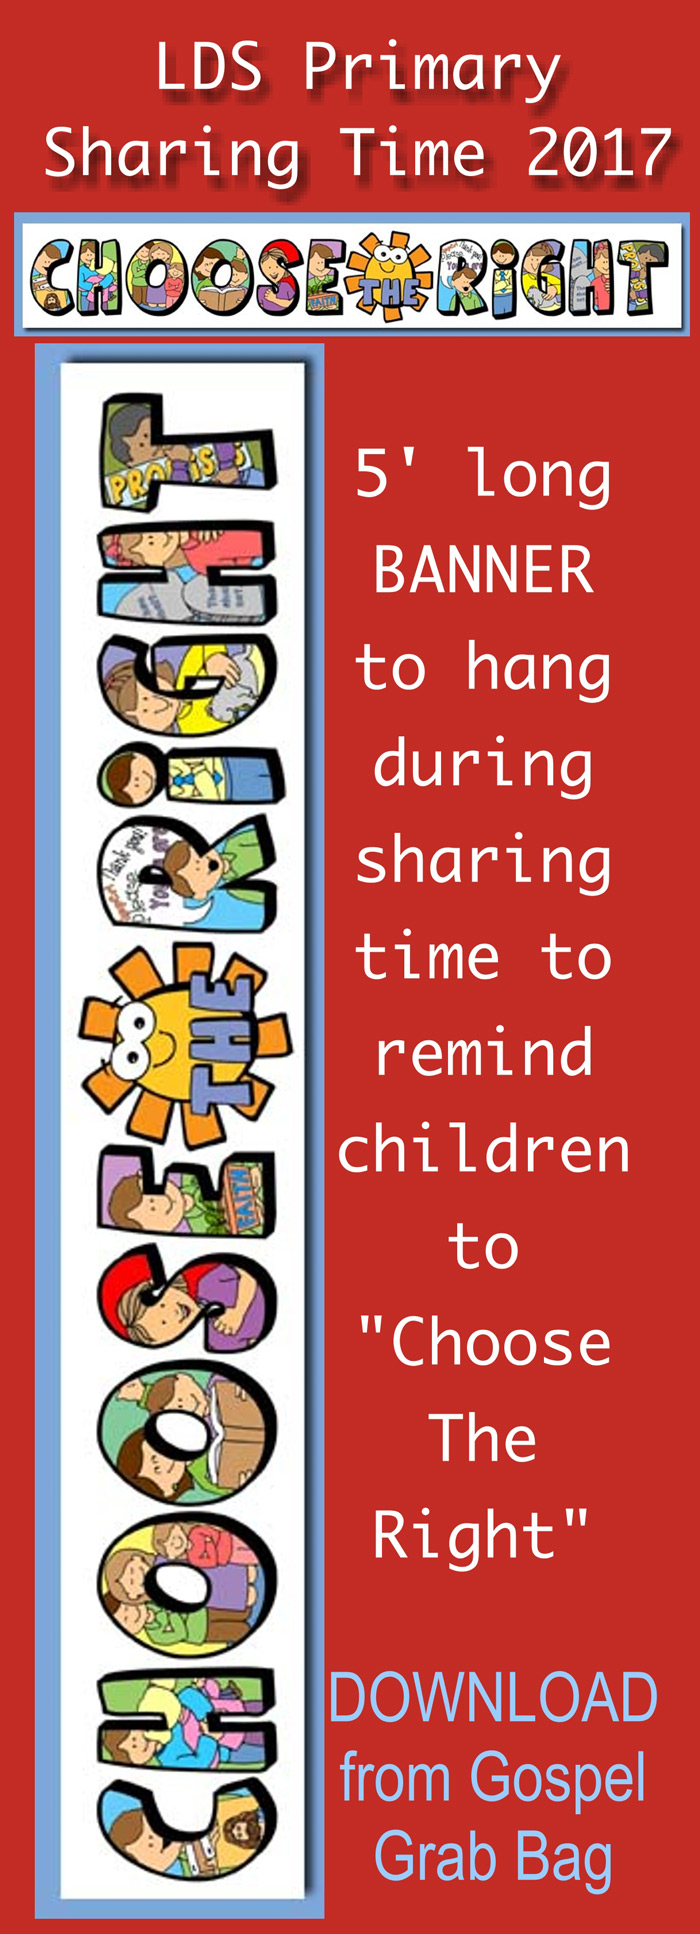 "DOWNLOAD Primary 2017 Sharing Time 5' long banner to display during sharing time to remind children to ""CHOOSE THE RIGHT"", GospelGrabBag.com"